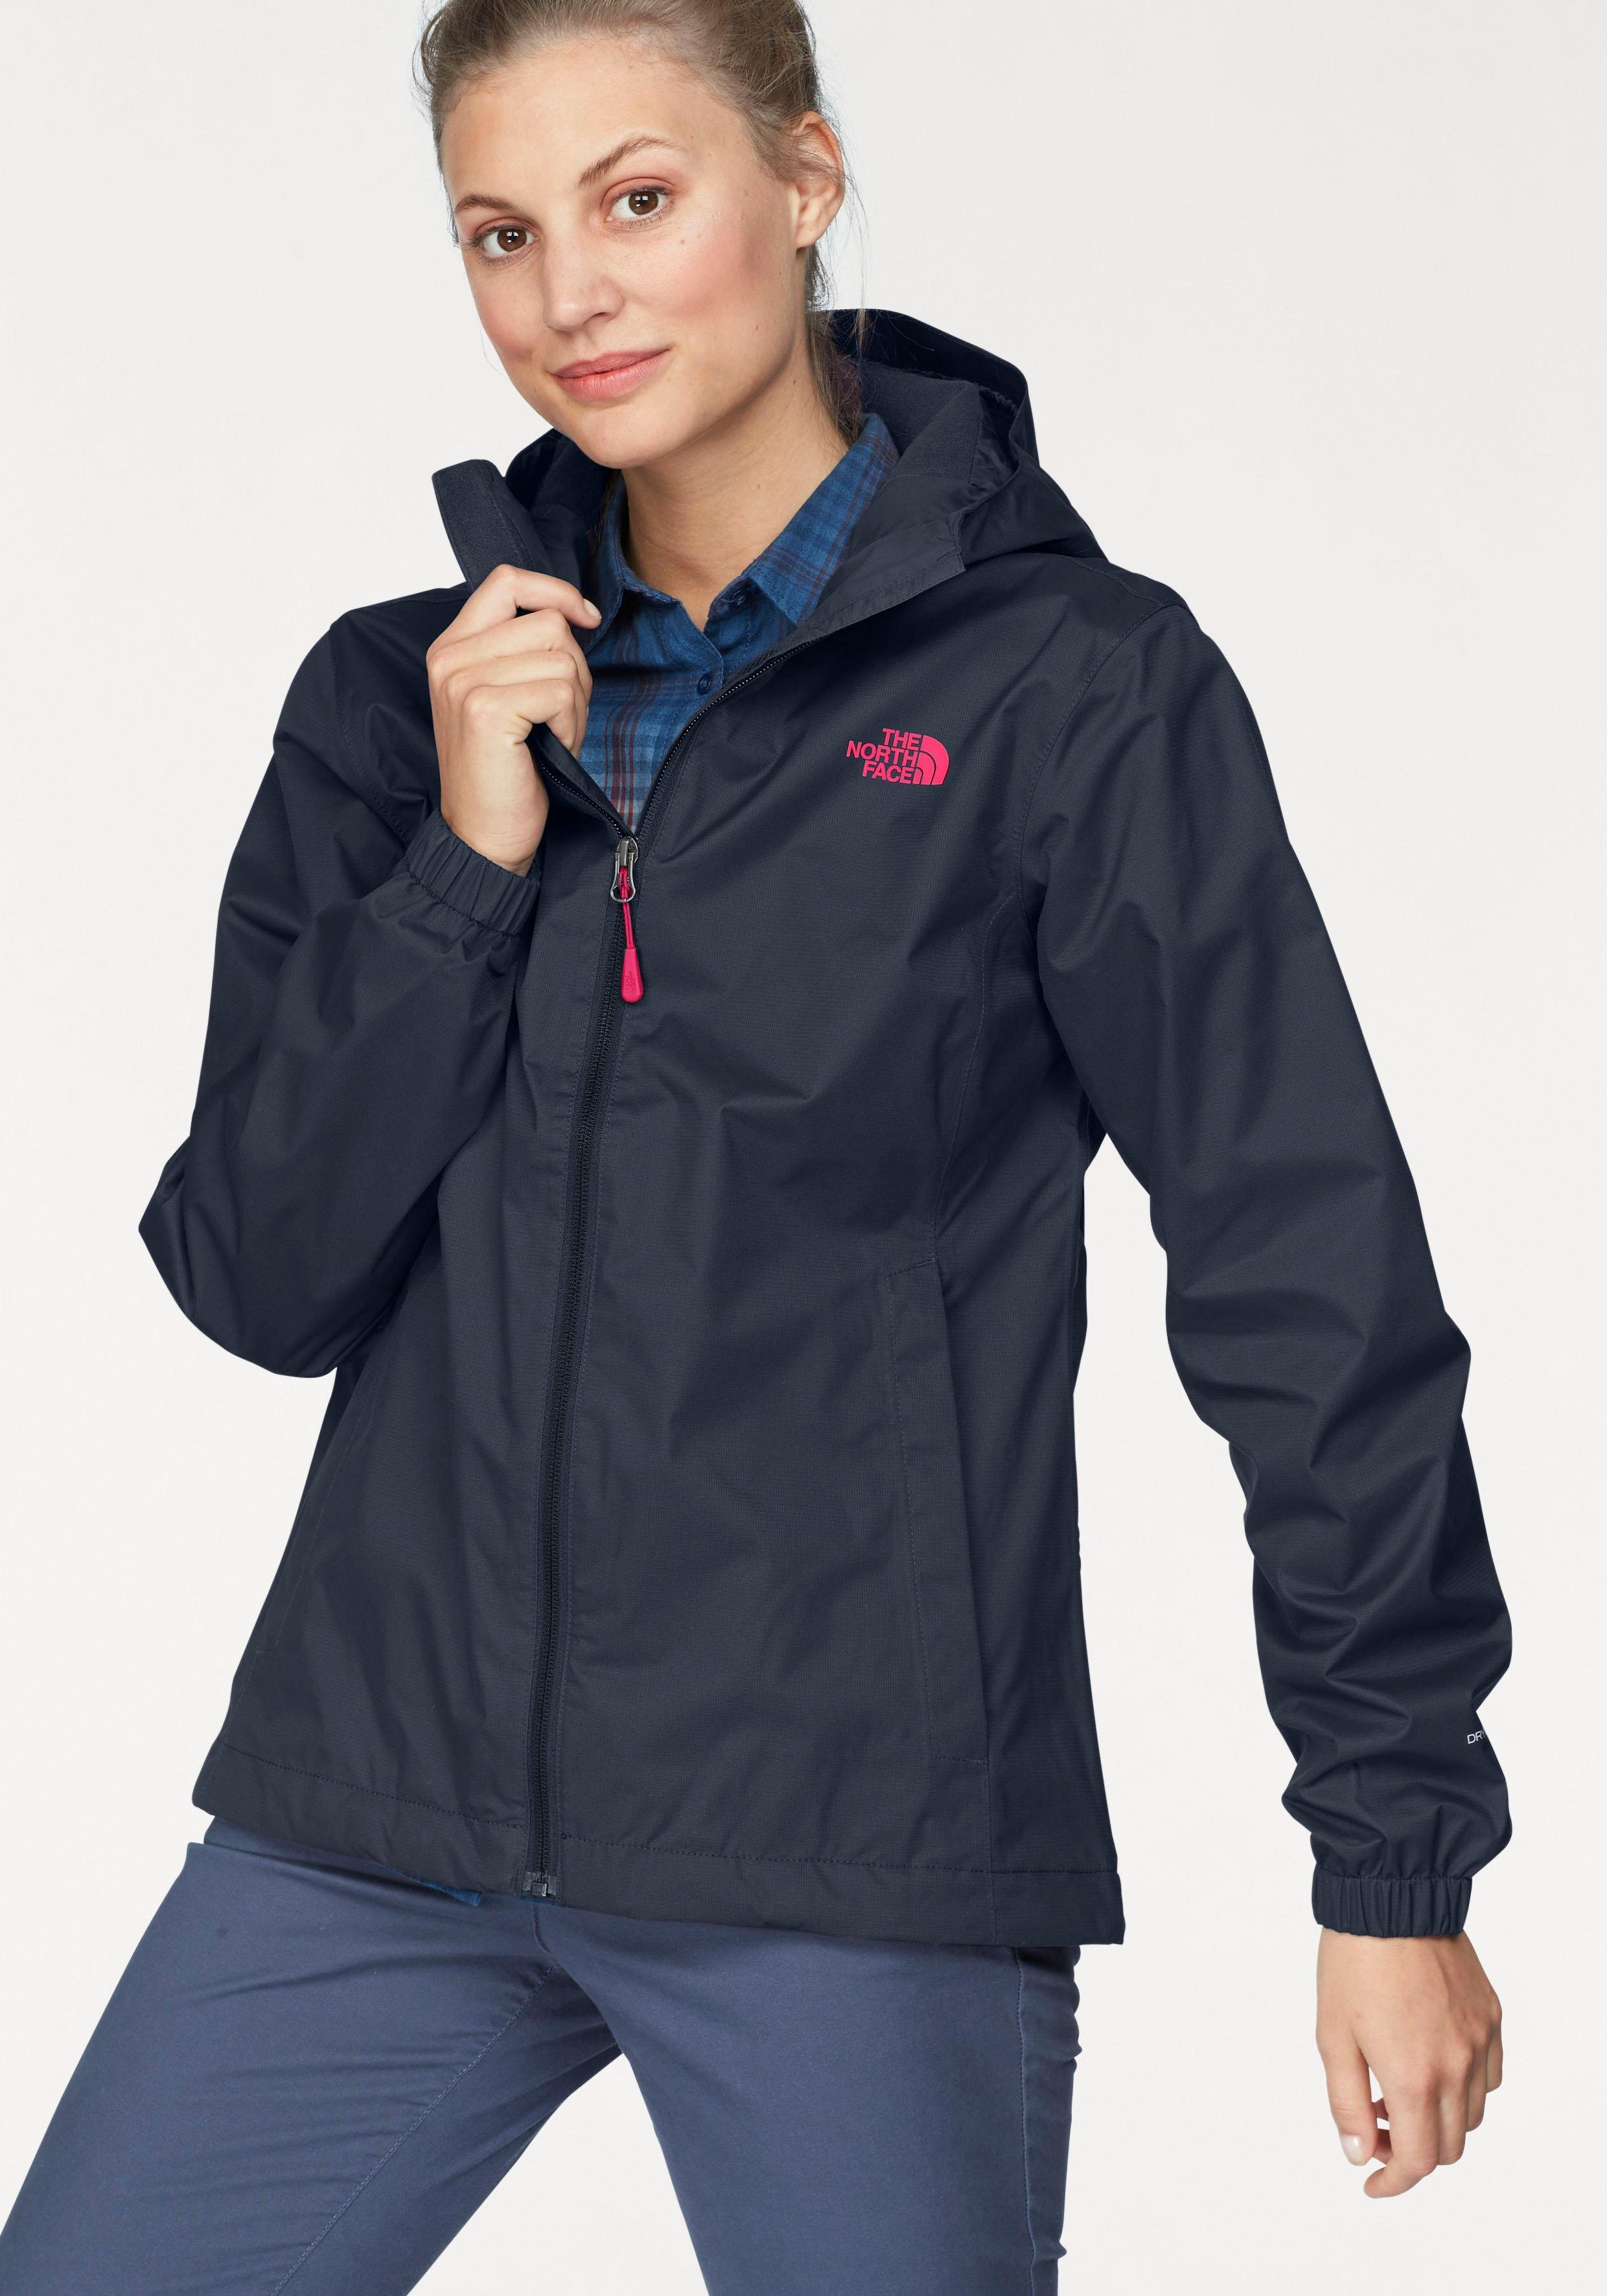 81369468a2ae49 The North Face Funktionsjacke »WOMENs QUEST«, absolut wasser- & winddicht